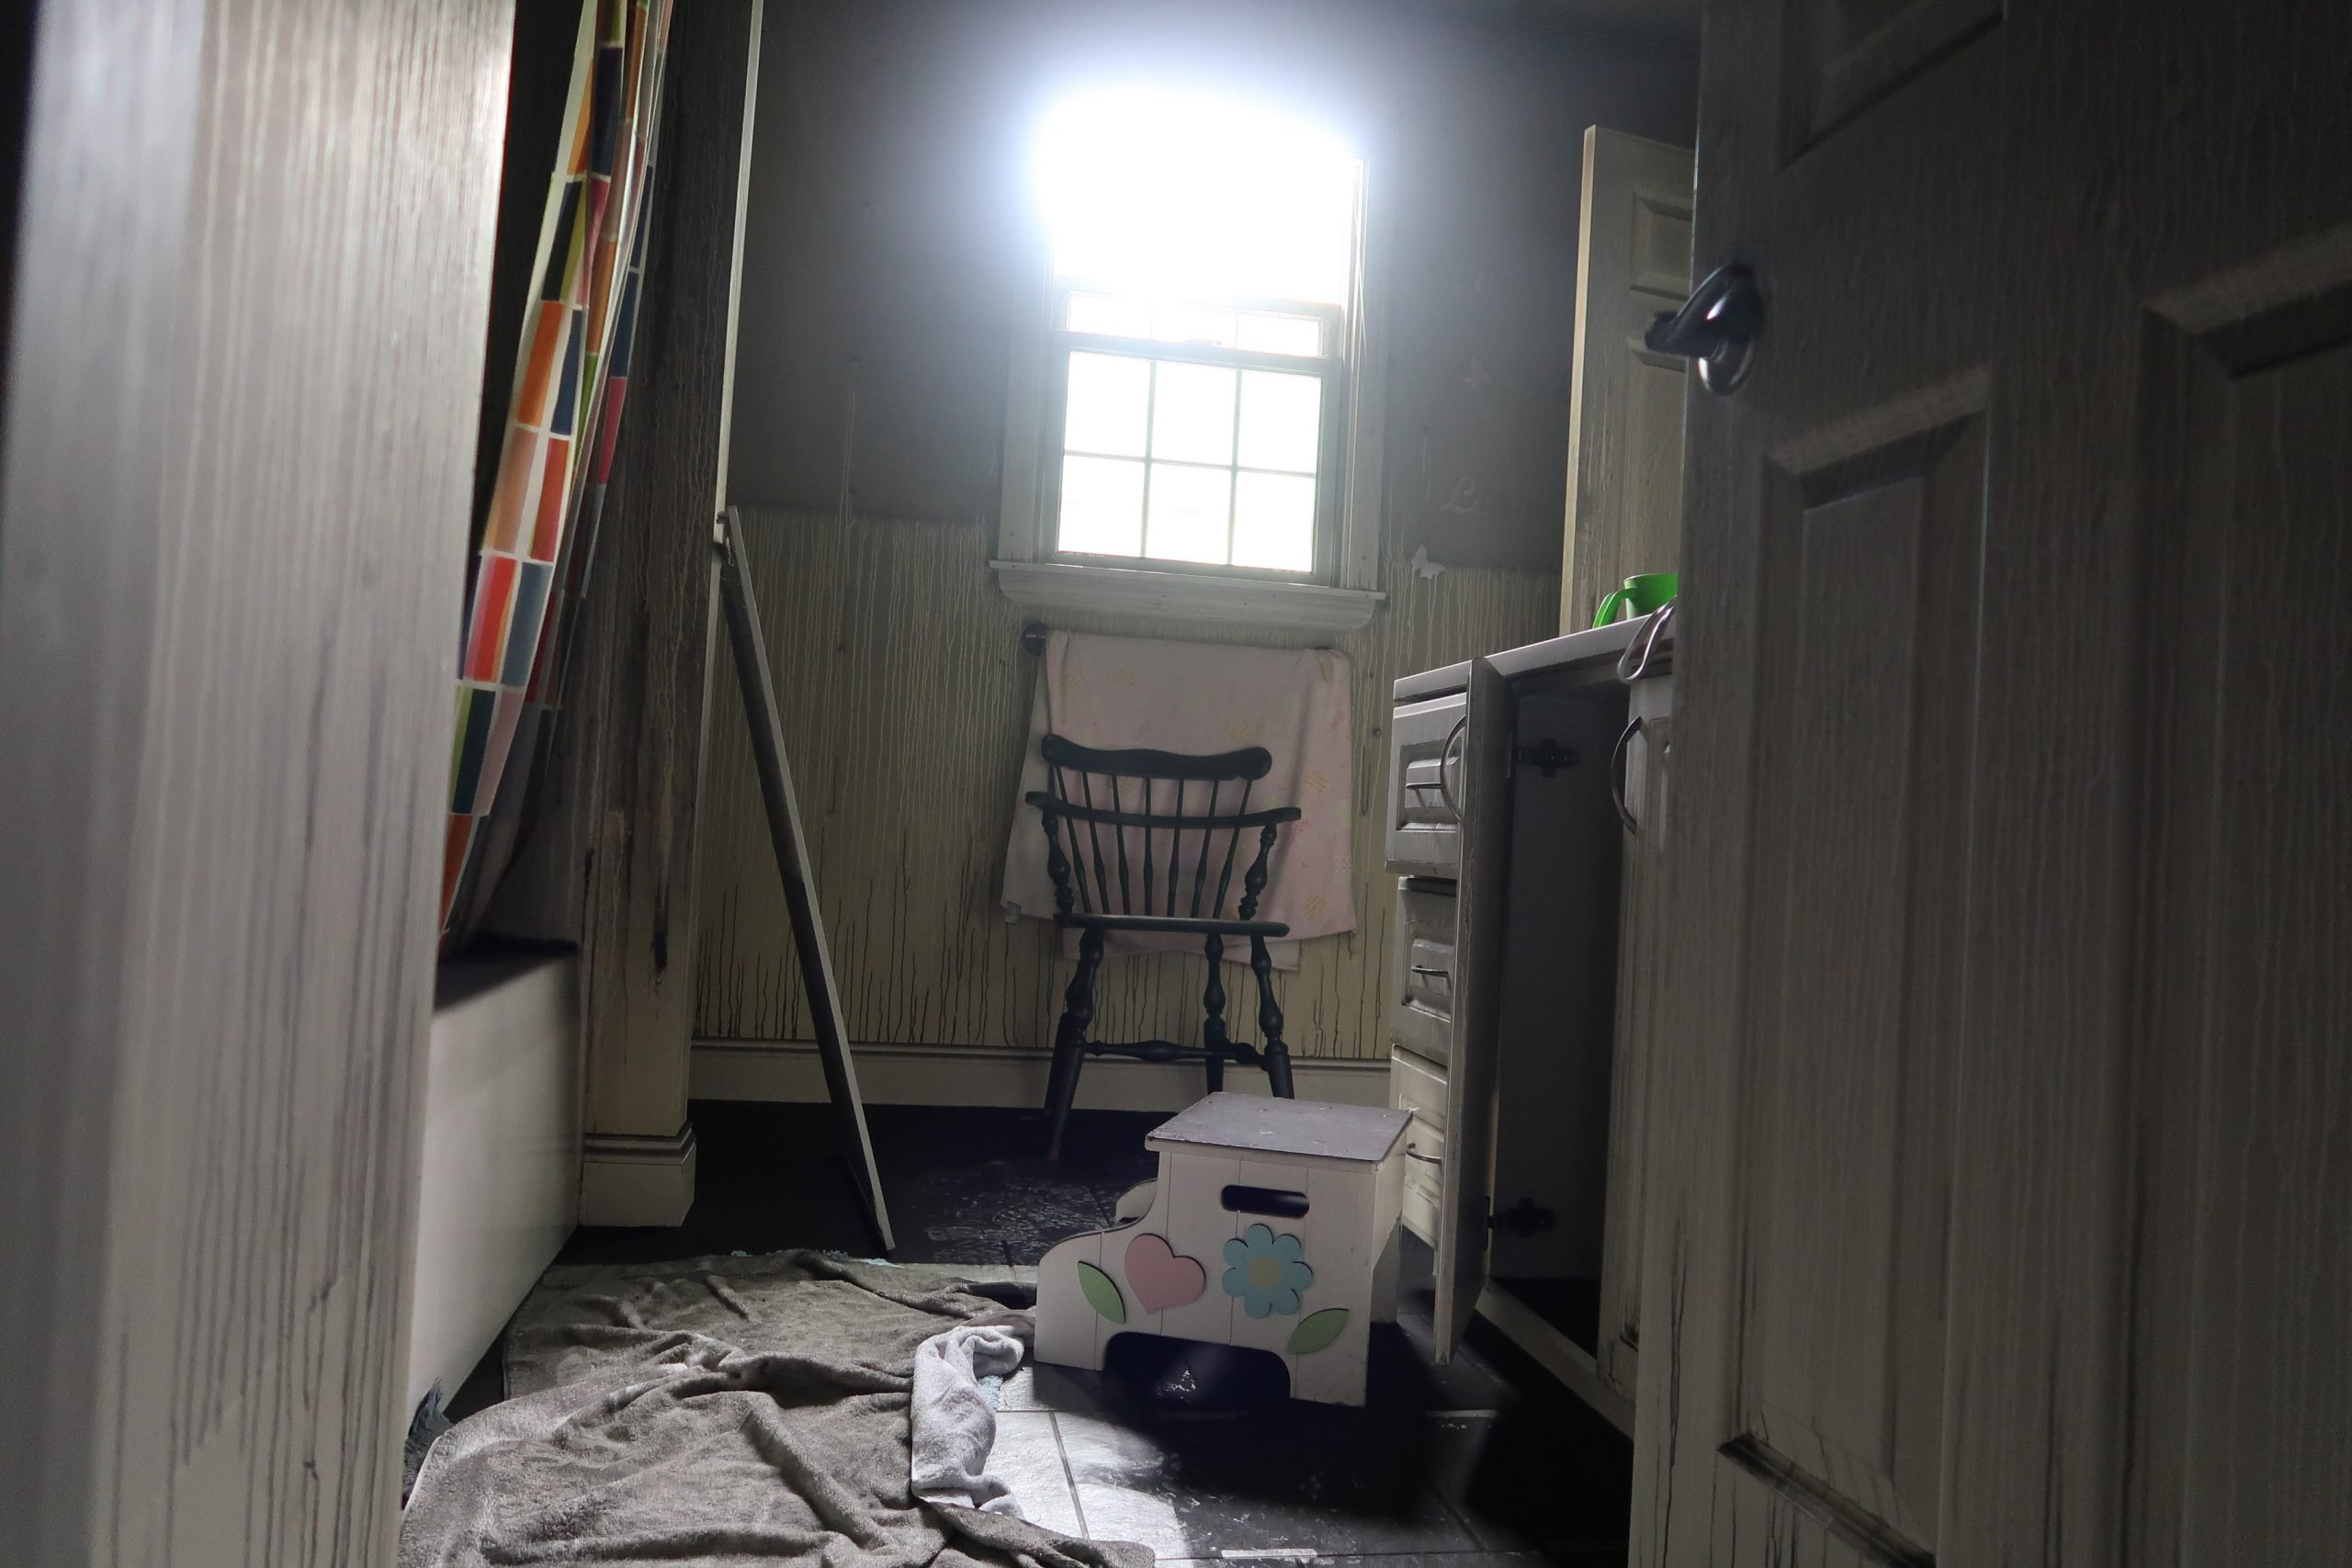 damaged contents after fire damage in ri